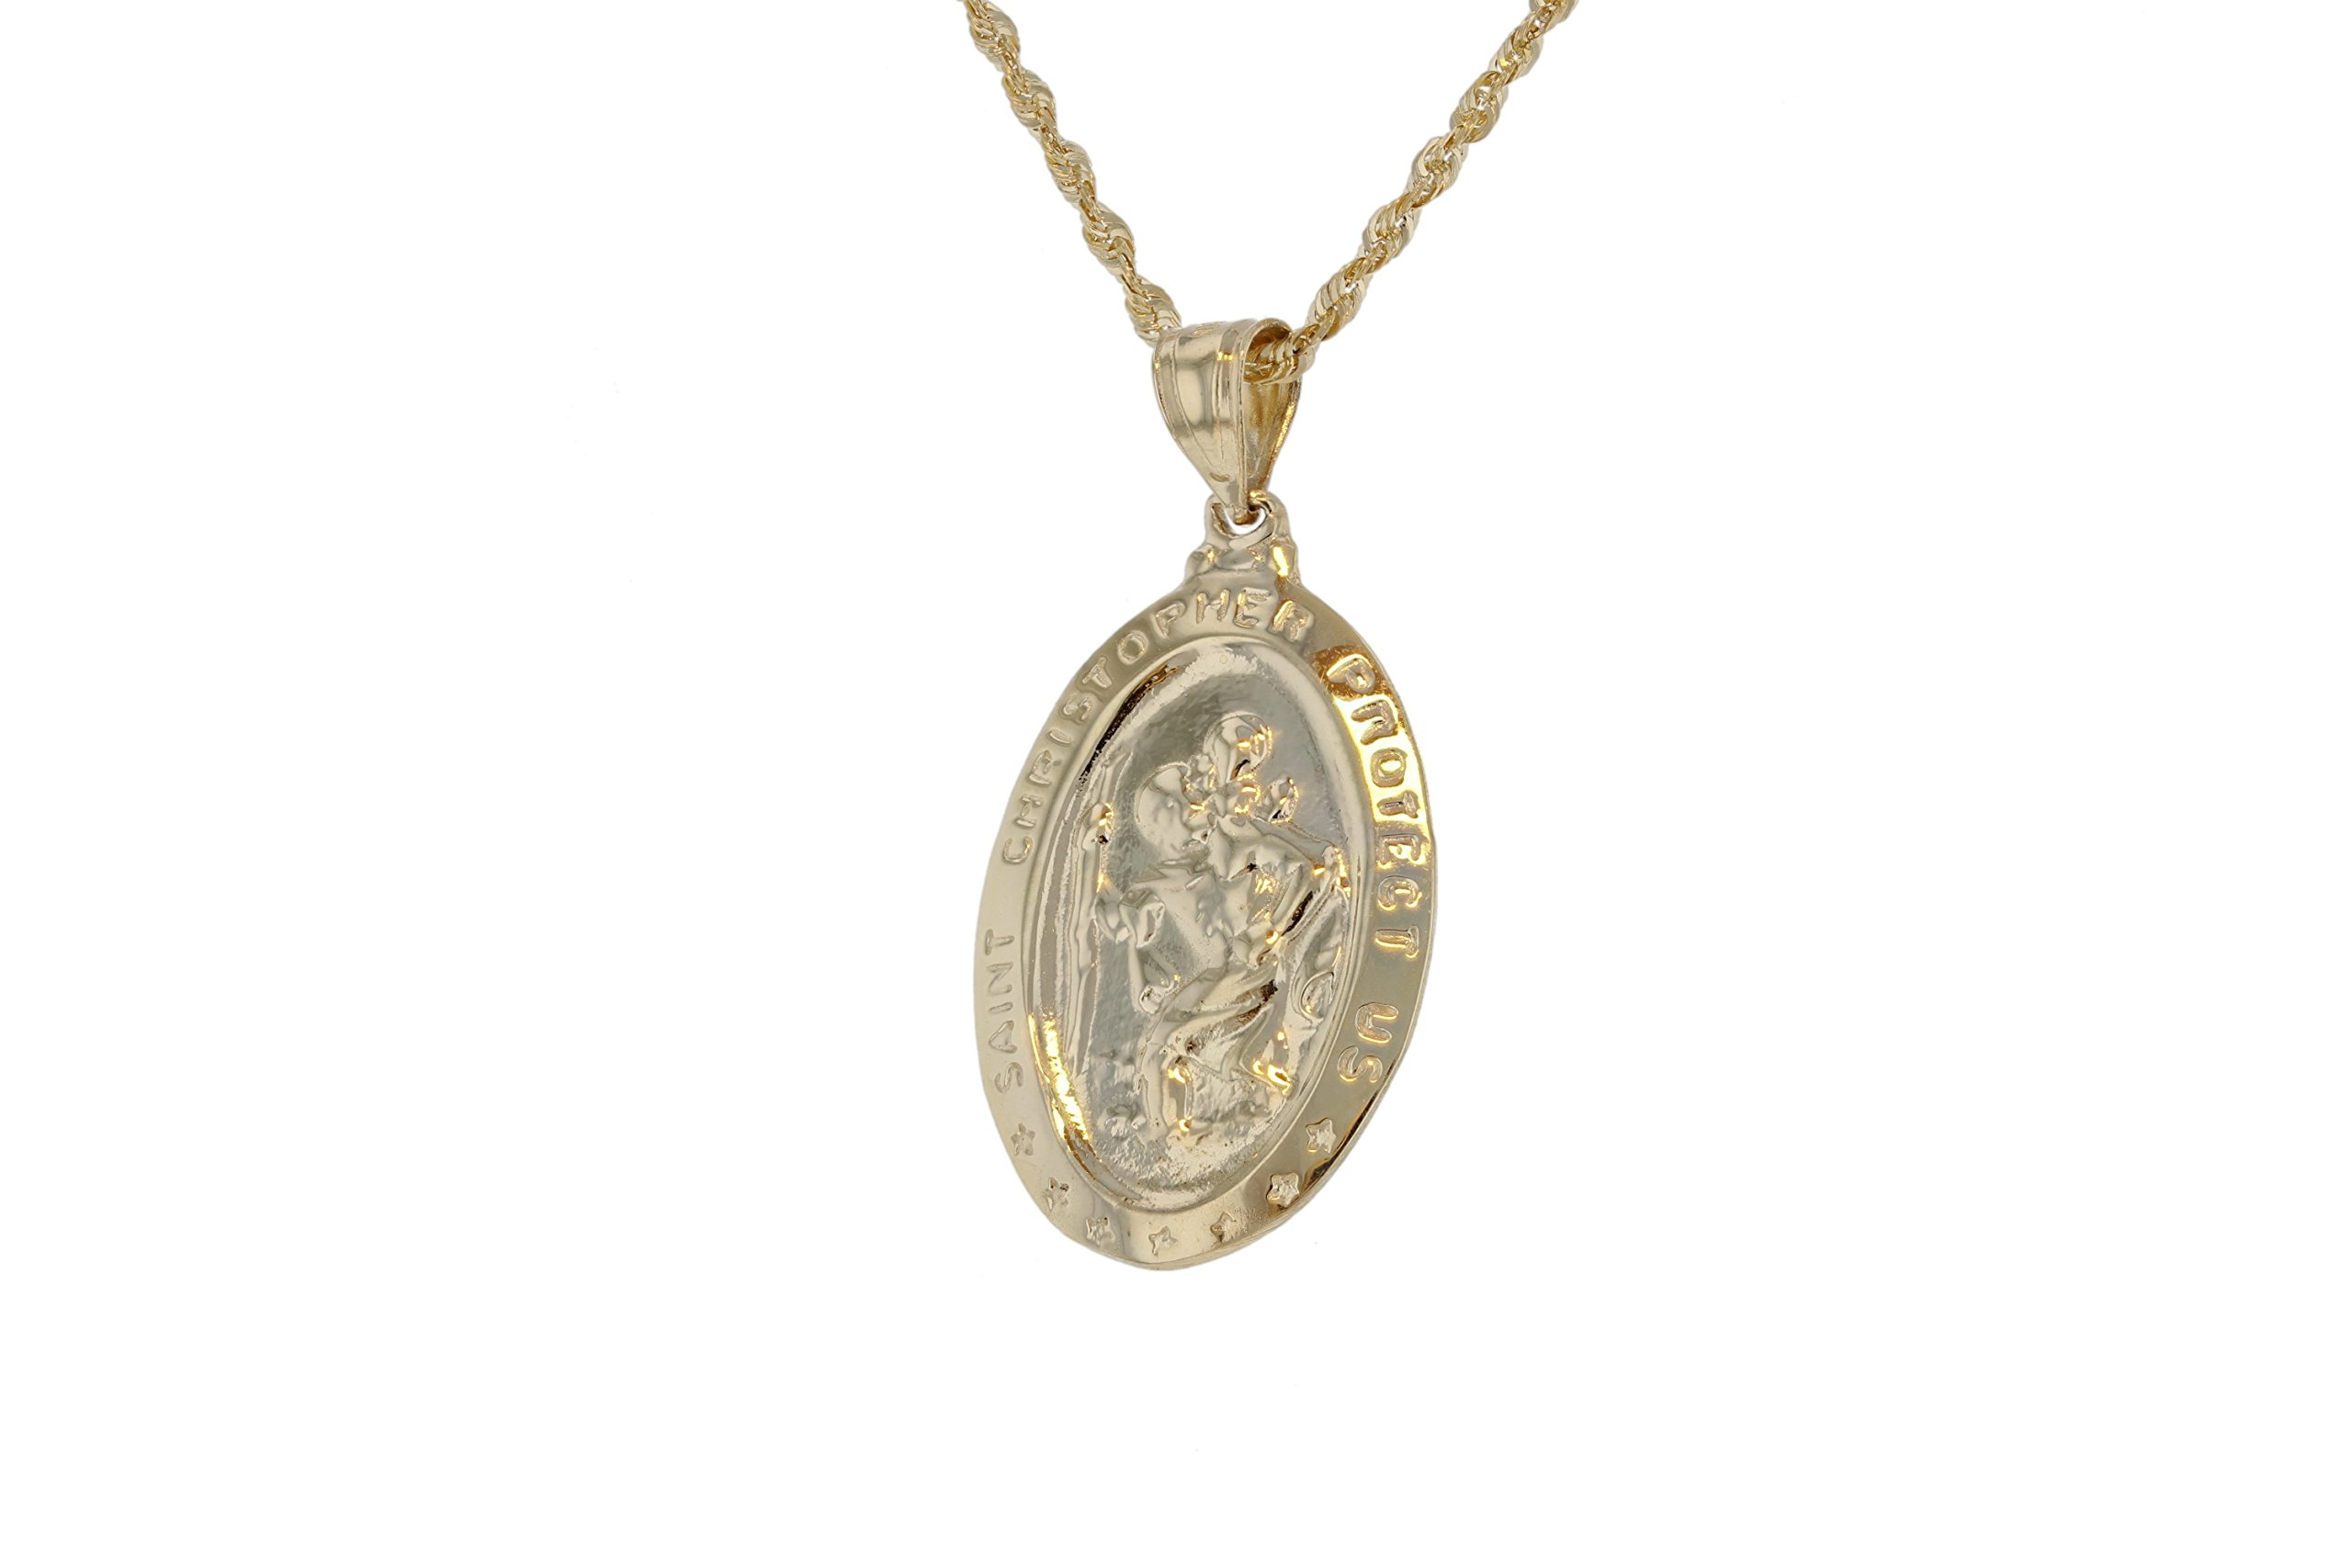 10k Yellow Gold Religious Christian St. Christopher with the Christ Child Oval Medallion Pendant (Large) by Glad Gold (Image #3)